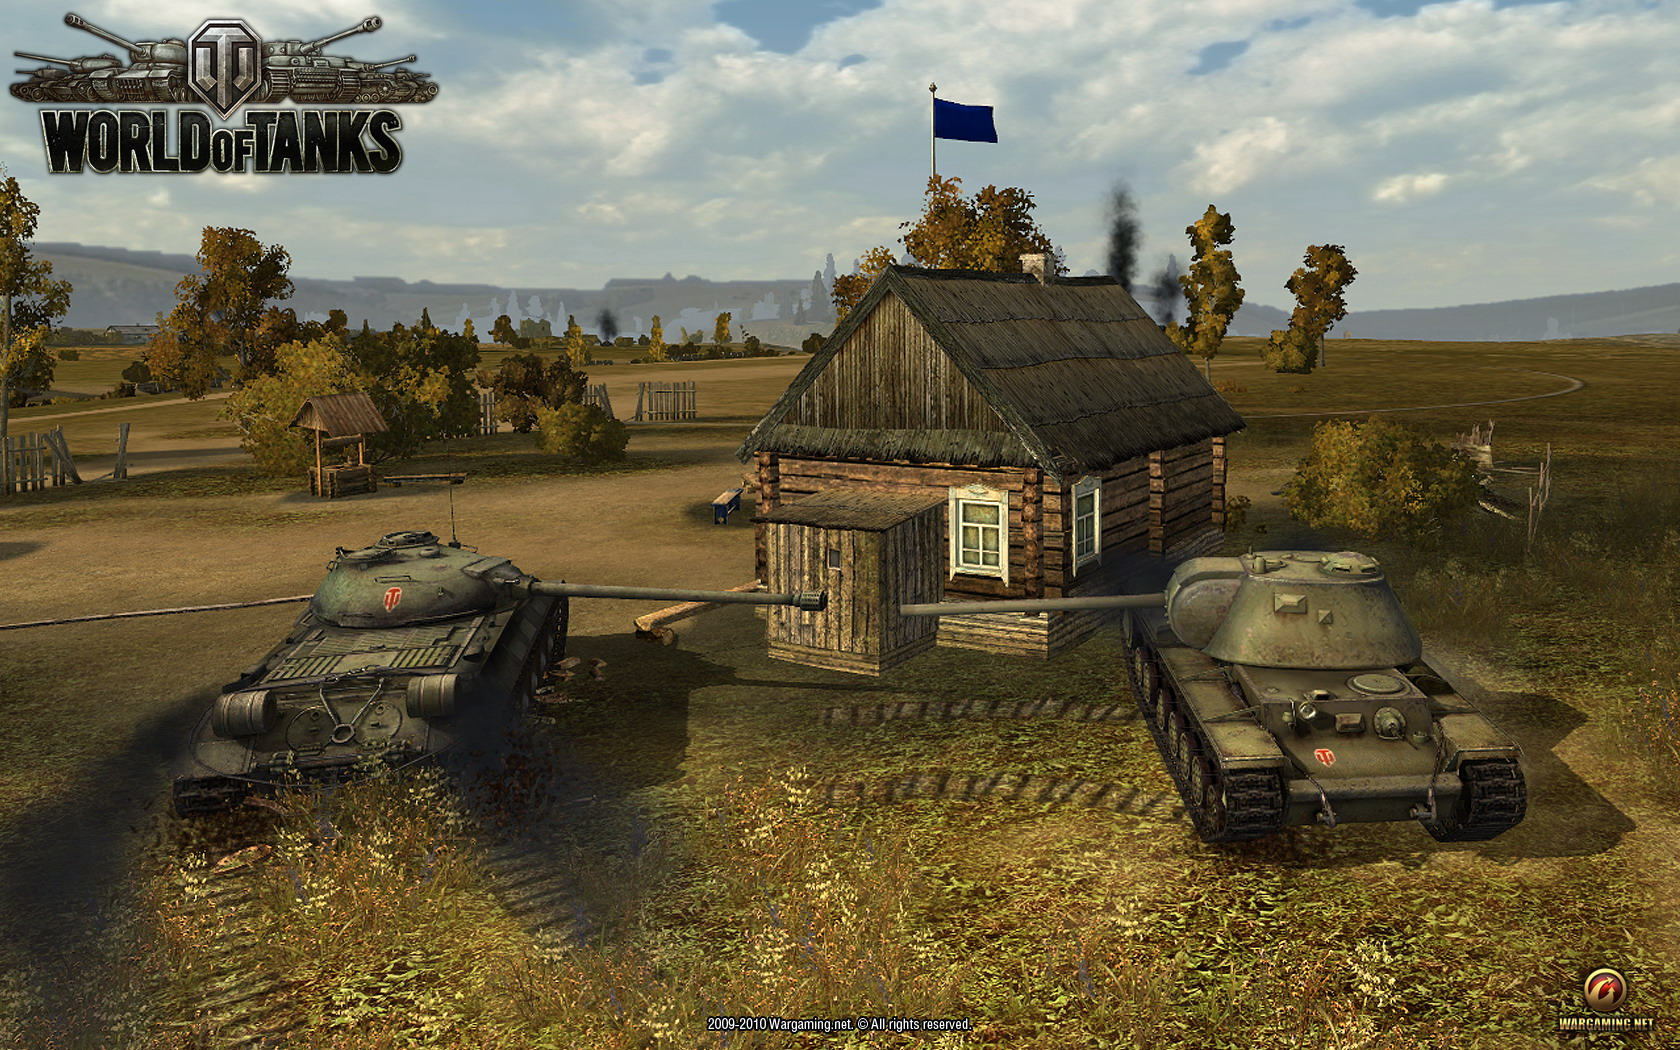 World Of Tanks, World Of Tanks Review, Xbox 360, X360, Xbox, Xbox One, PC, PS4, Video Game, Review, Screenshot